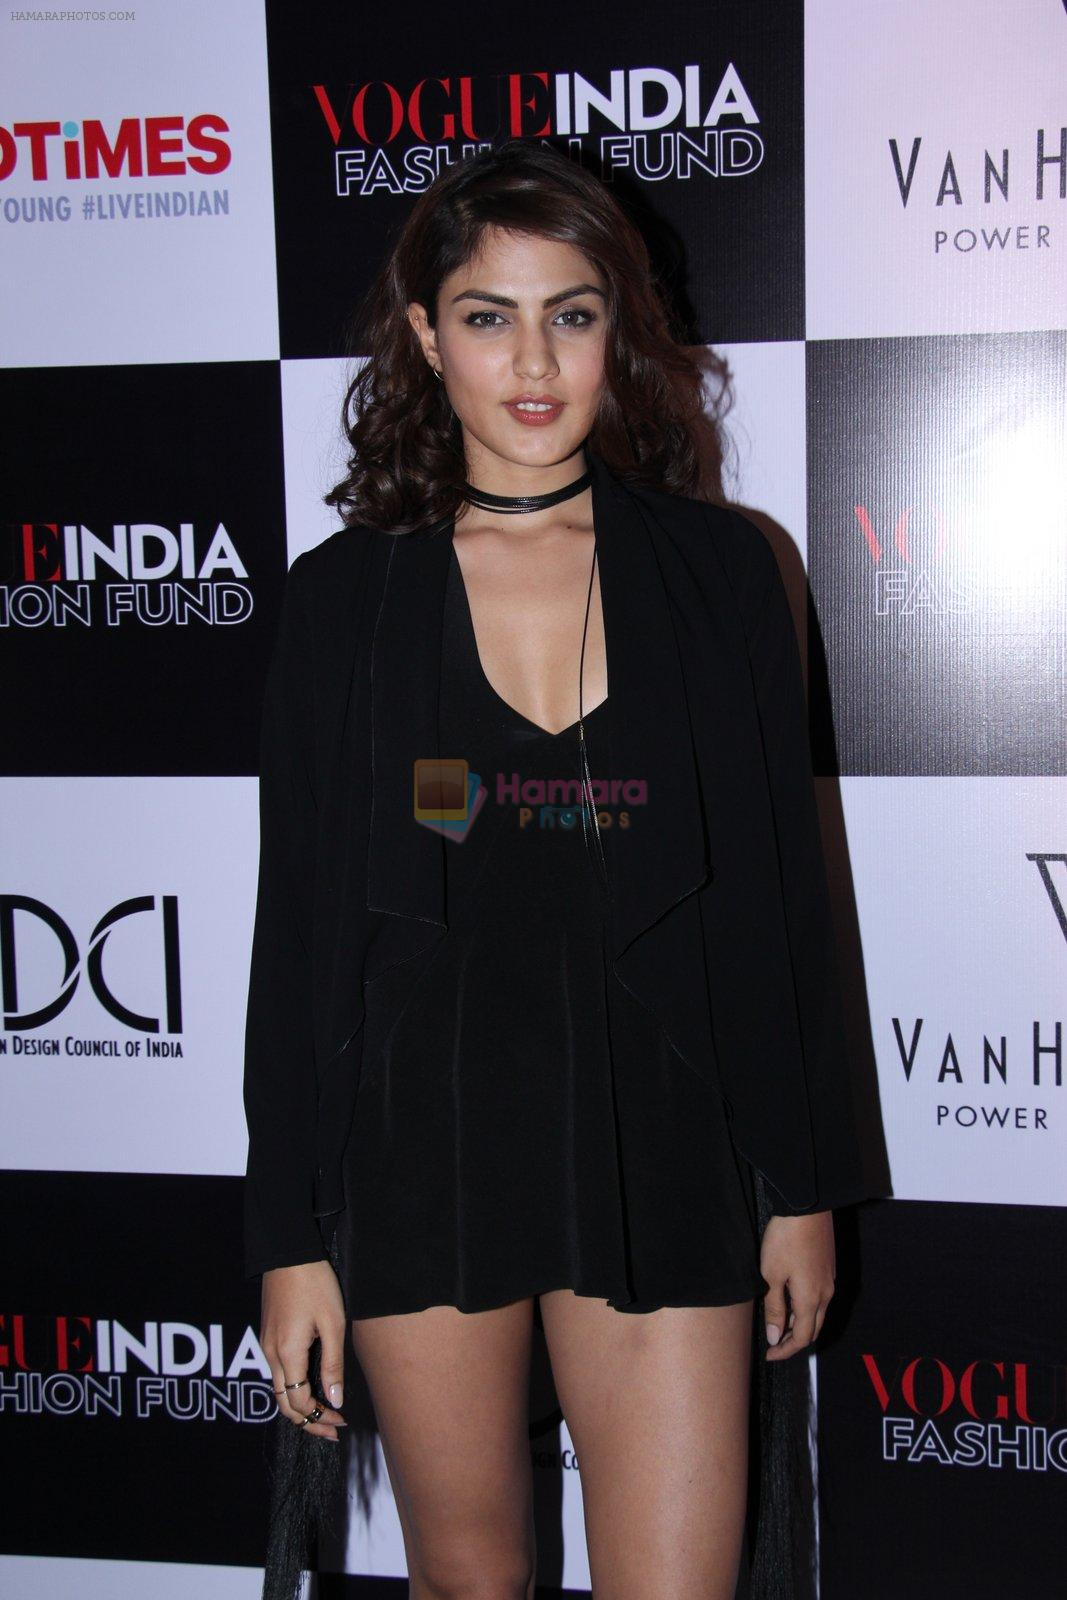 Rhea Chakraborty at Vogue India Fashion Fund Event on 29th Nov 2016